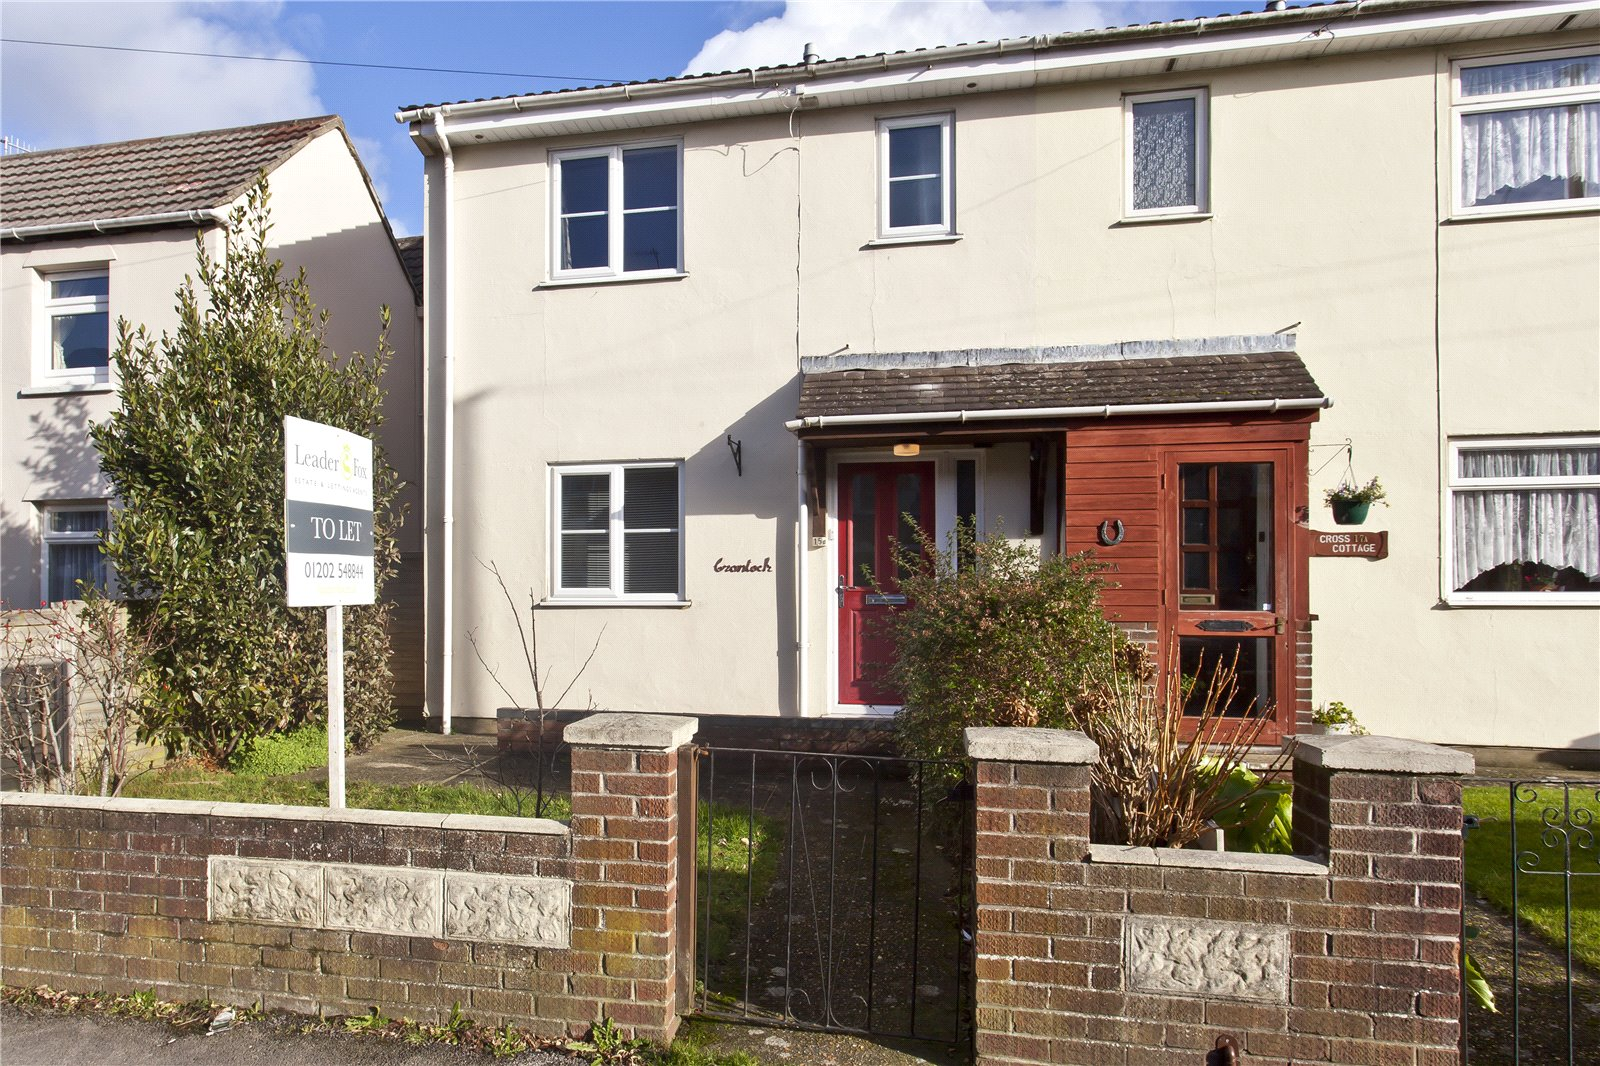 3 bed house to rent in Ashley Cross - Property Image 1